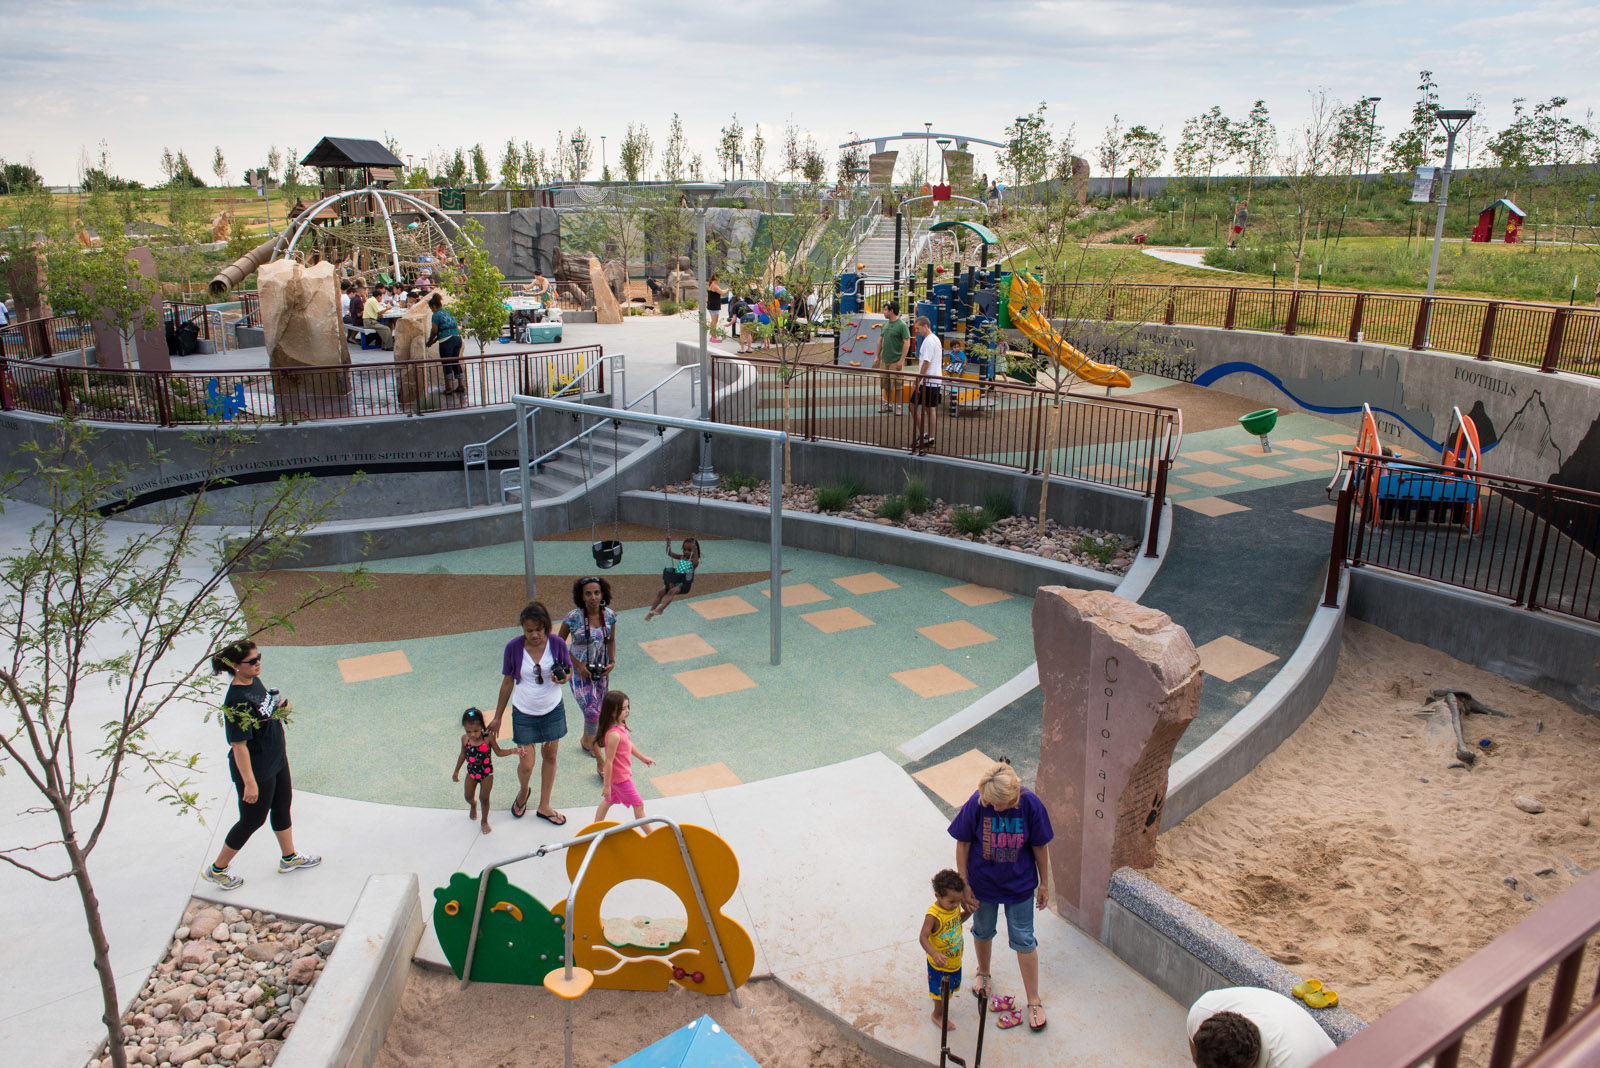 Colorado playground playground for all ages